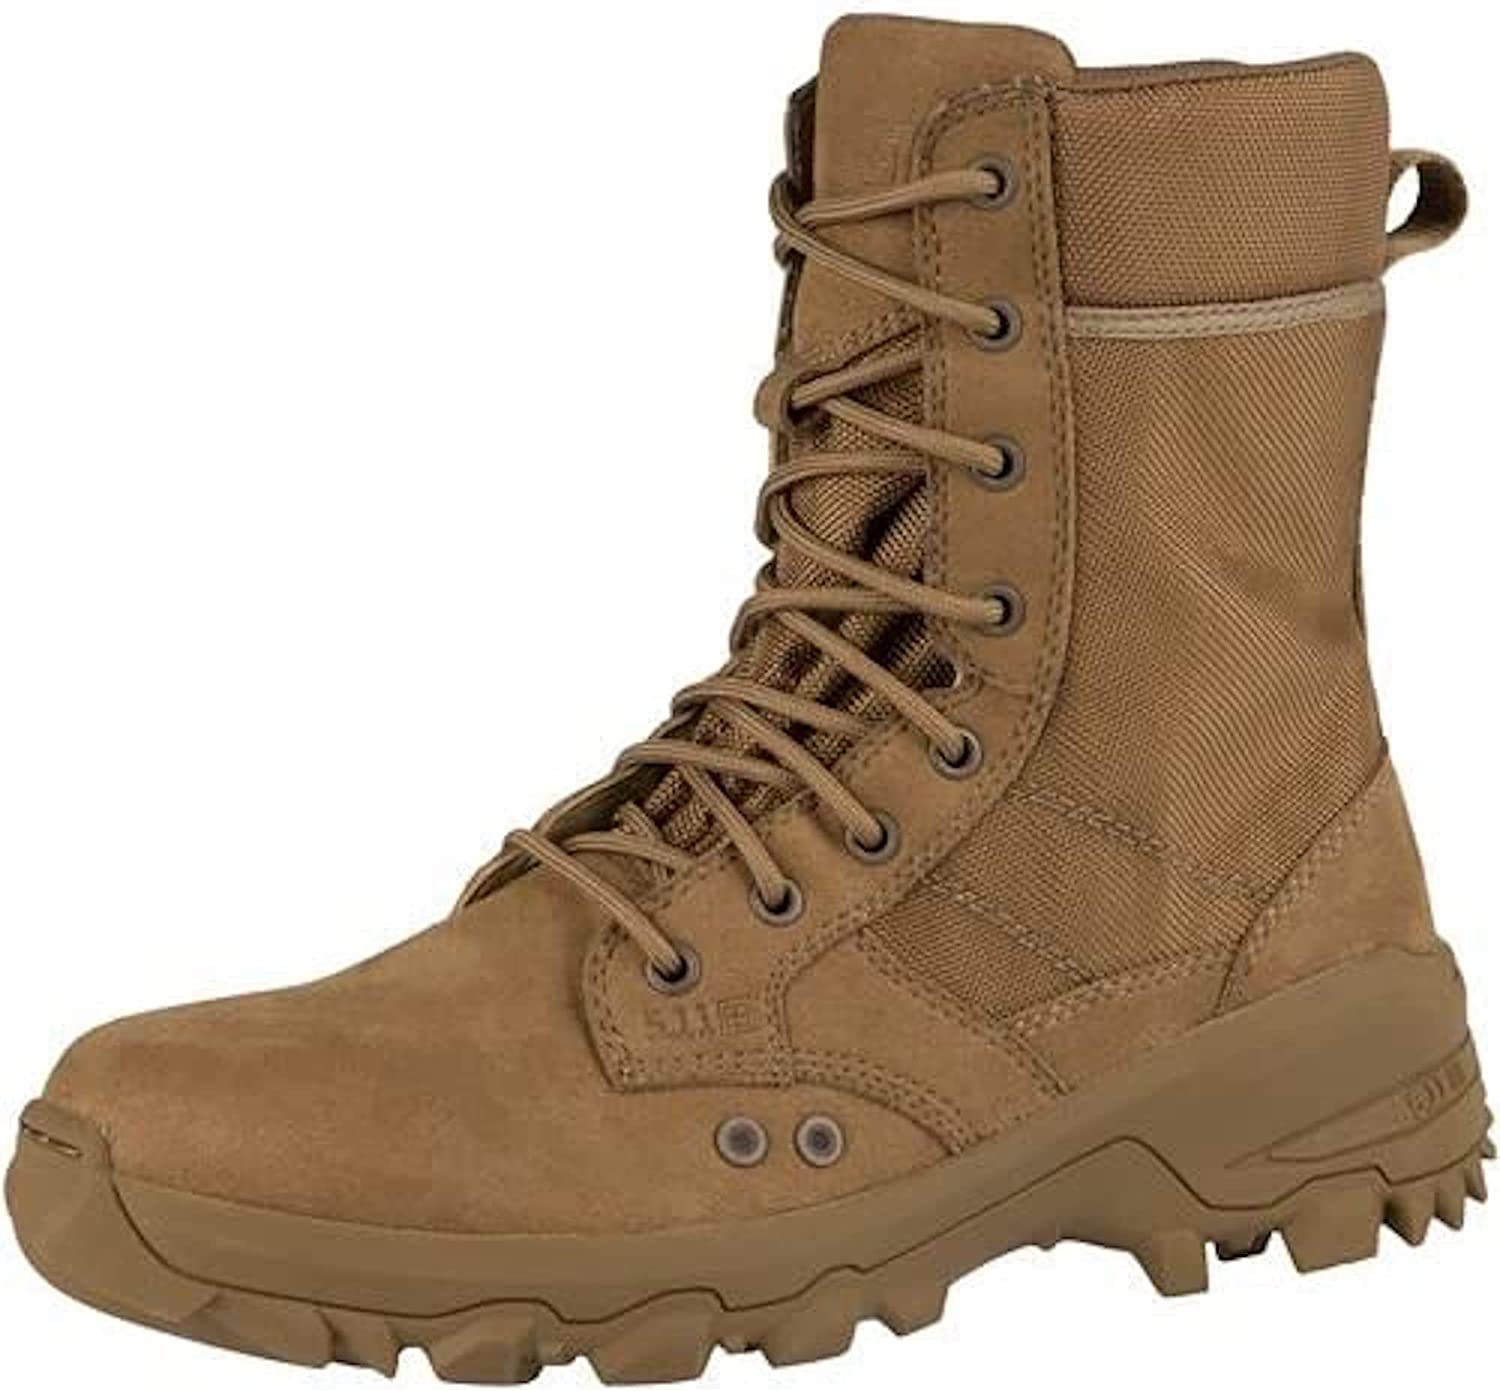 5.11 Men's Speed 3.0 Jungle Tactical Boot Military & Tactical, Equipped with OrthoLite Insoles and Fence-climbing Toes: Shoes